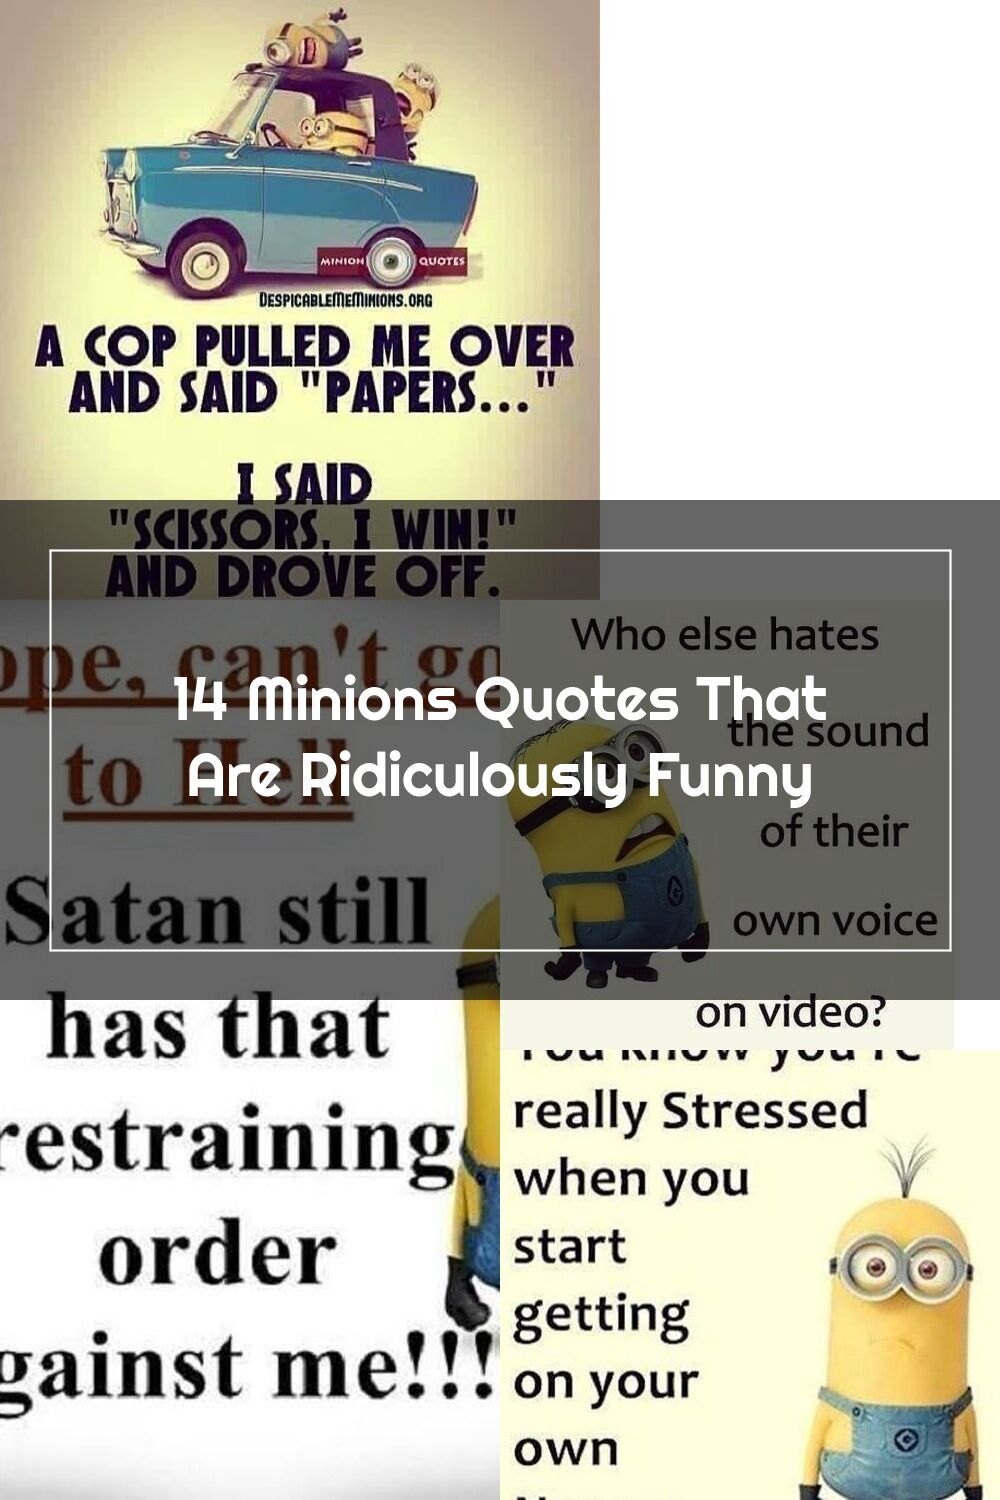 Cheer Yourself Up With These Ultra Hilarious Quotes From The Minions In 2020 Funny Quotes Minions Quotes Quotes